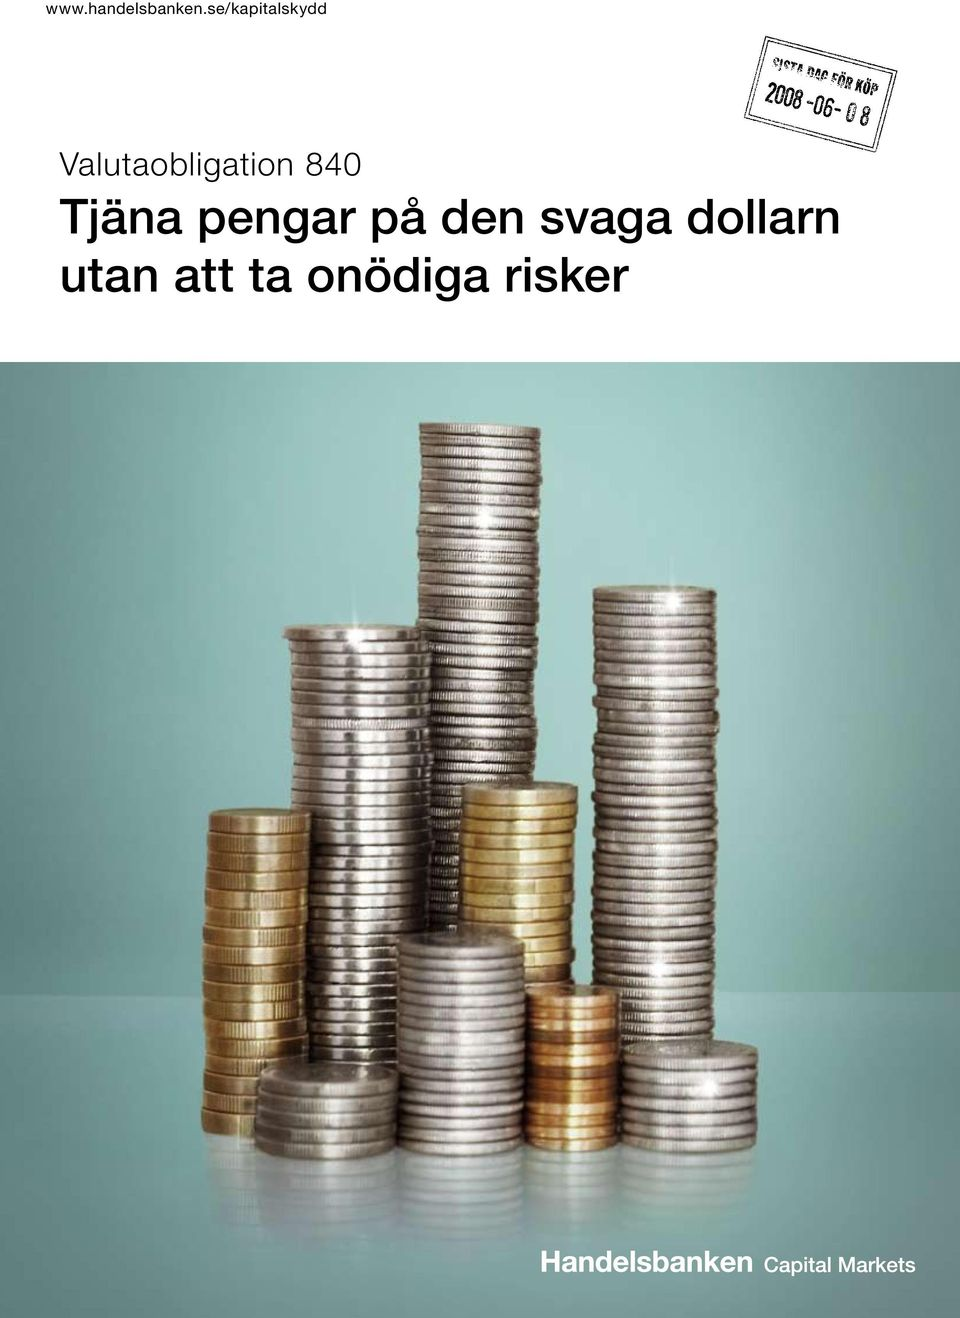 Valutaobligation 840 Tjäna